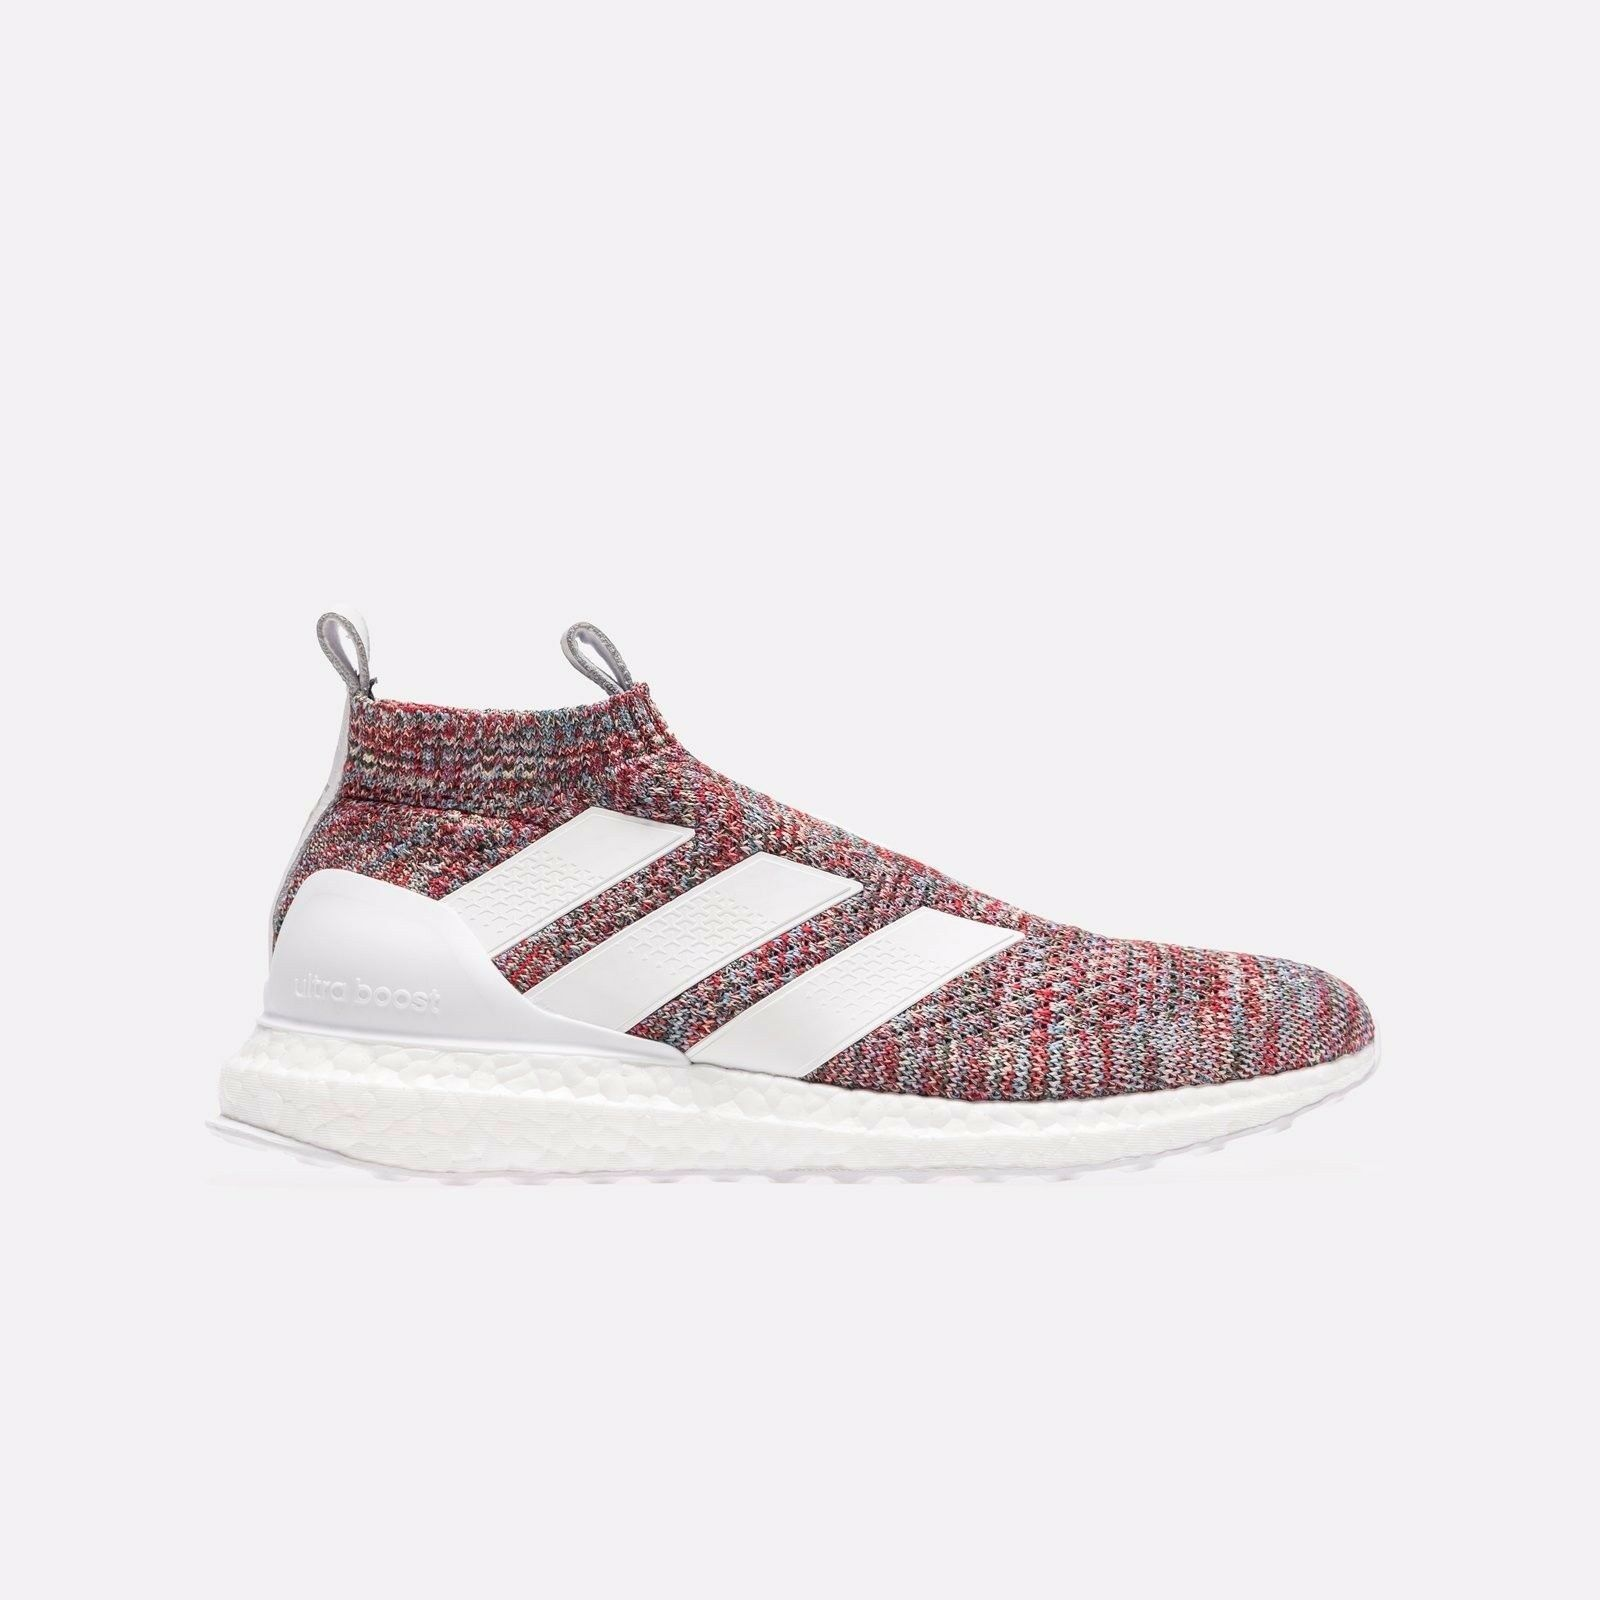 KITH x x x Adidas COPA ACE 16+ Purecontrol Ultra Boost Multicolor Size 8.5 4031d1